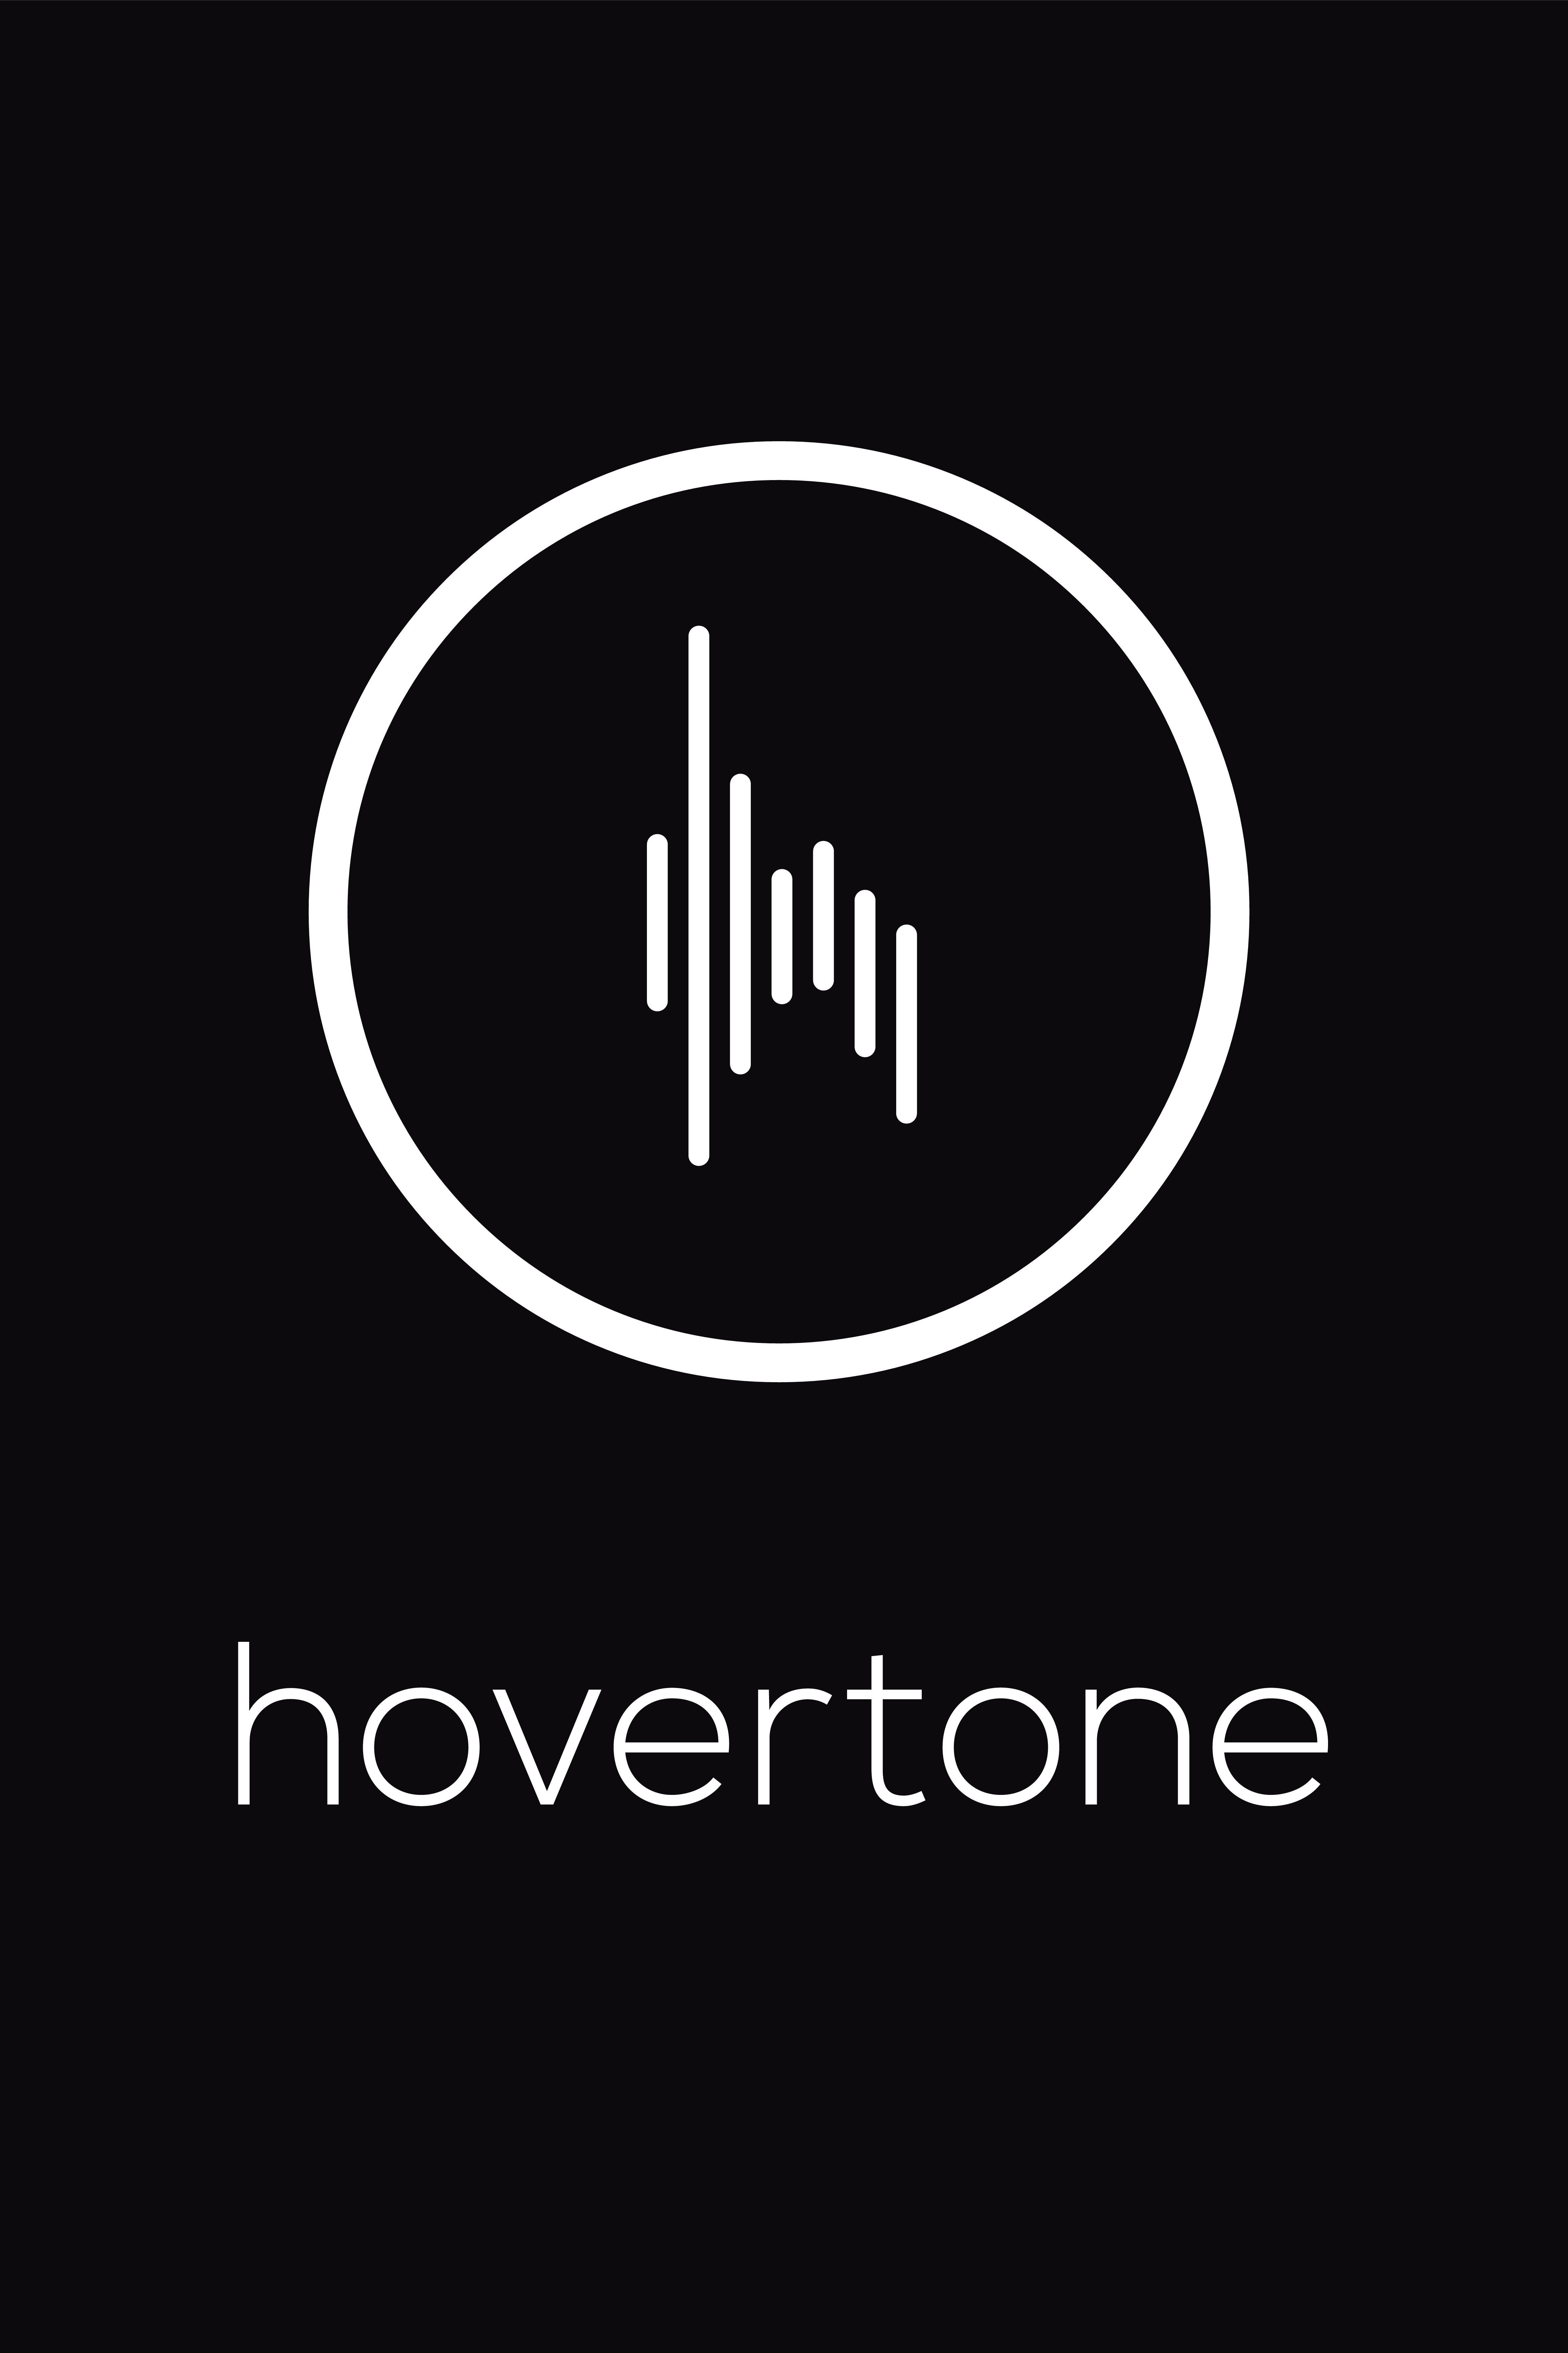 Create a logo for Hovertone (creative technology startup)